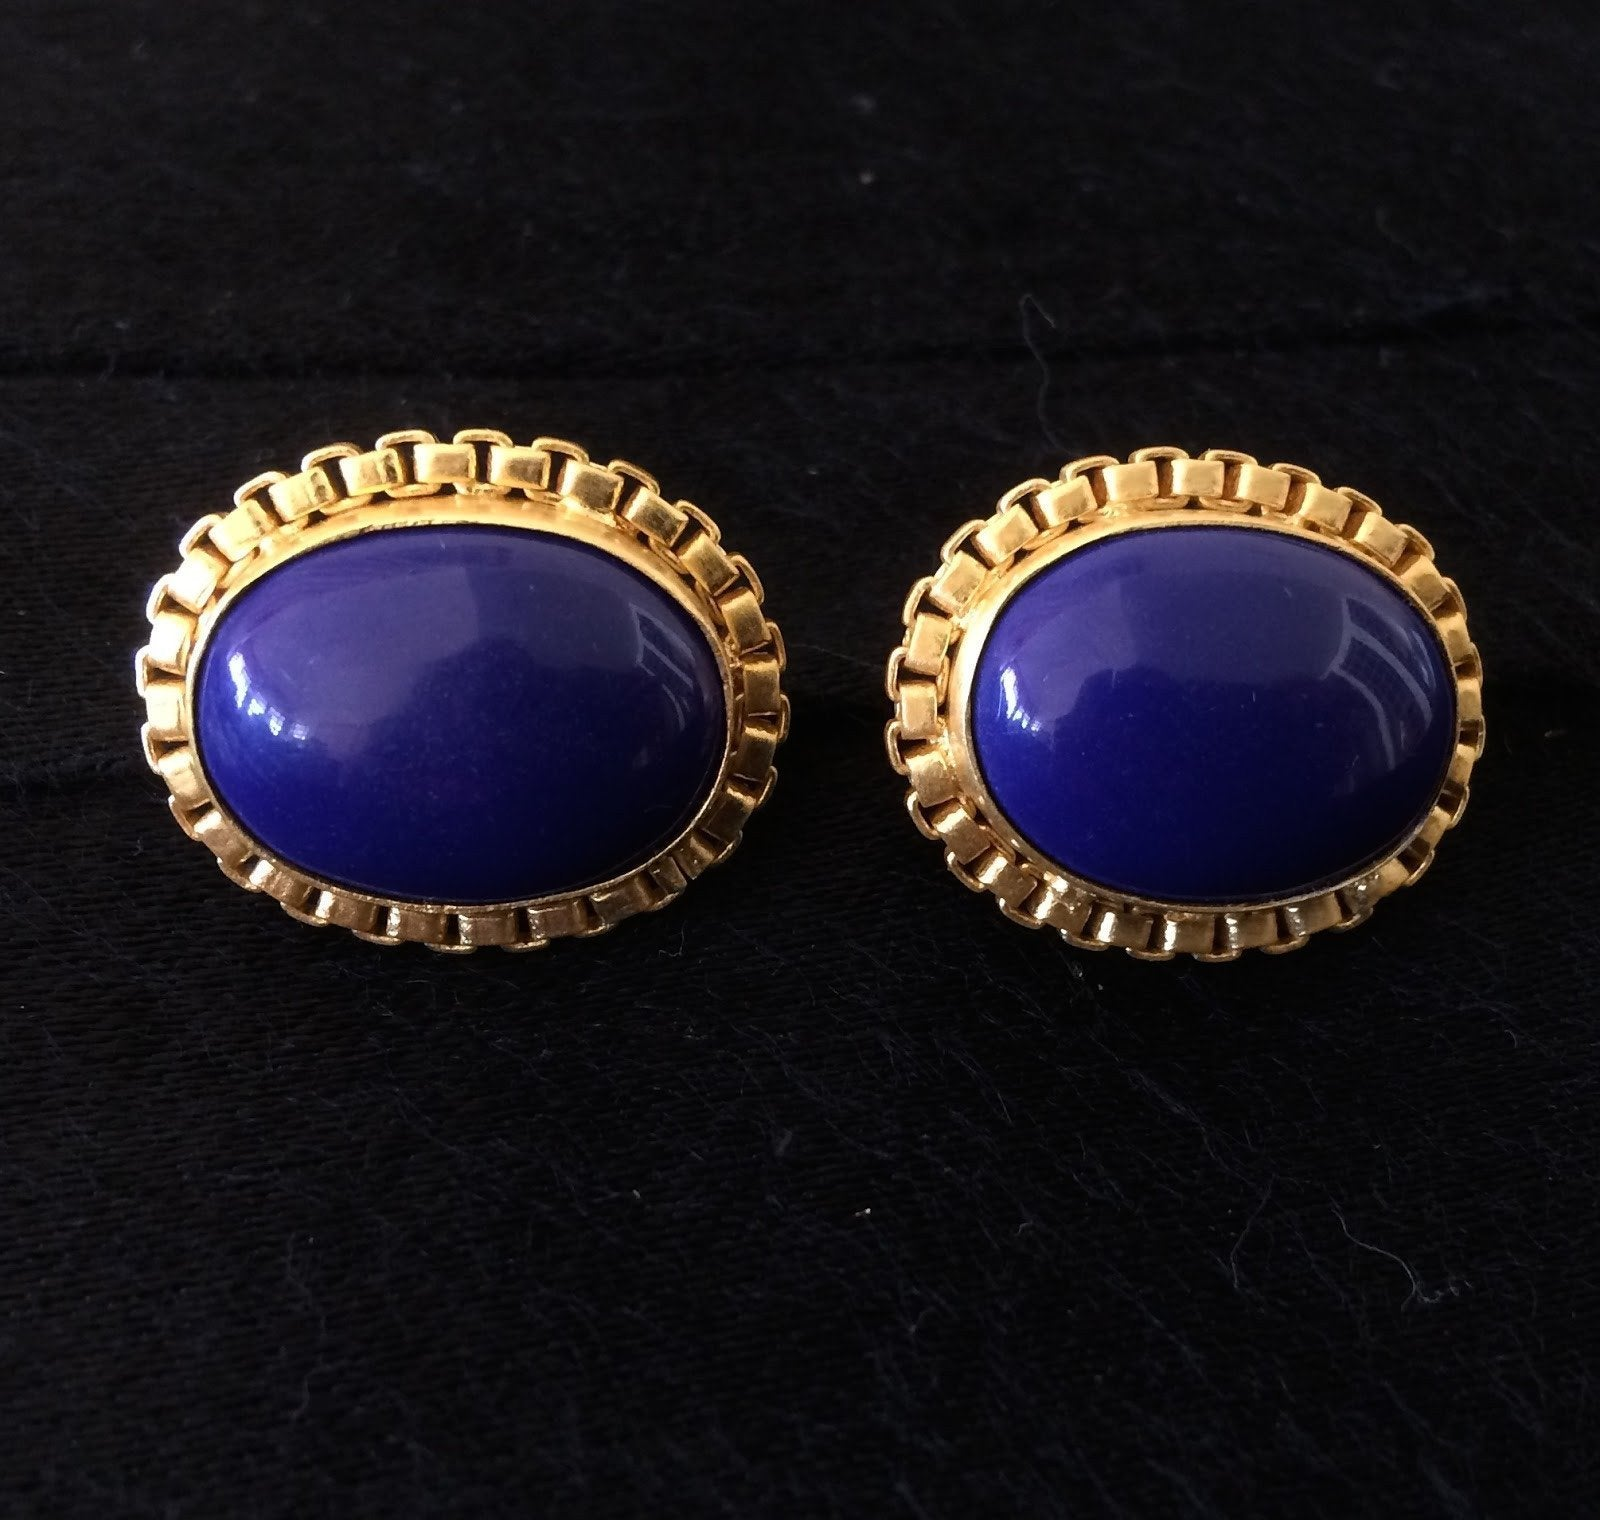 Stud Earring With A Box Chain Surrounding A Lapis Stone